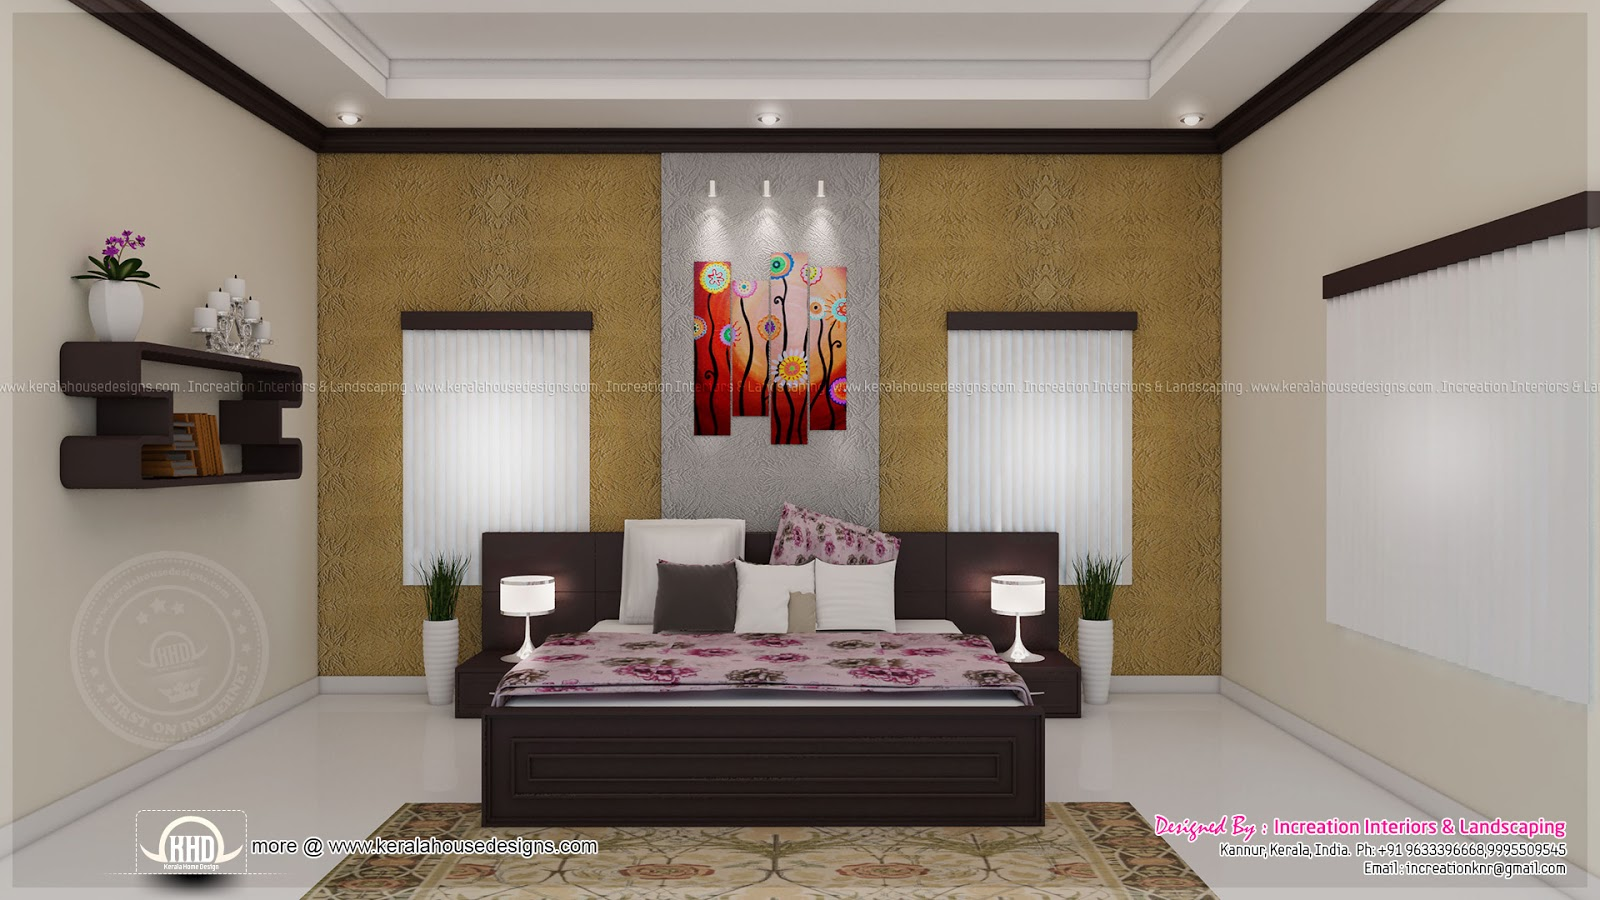 House interior ideas in 3d rendering kerala home design for Indoor design ideas indian